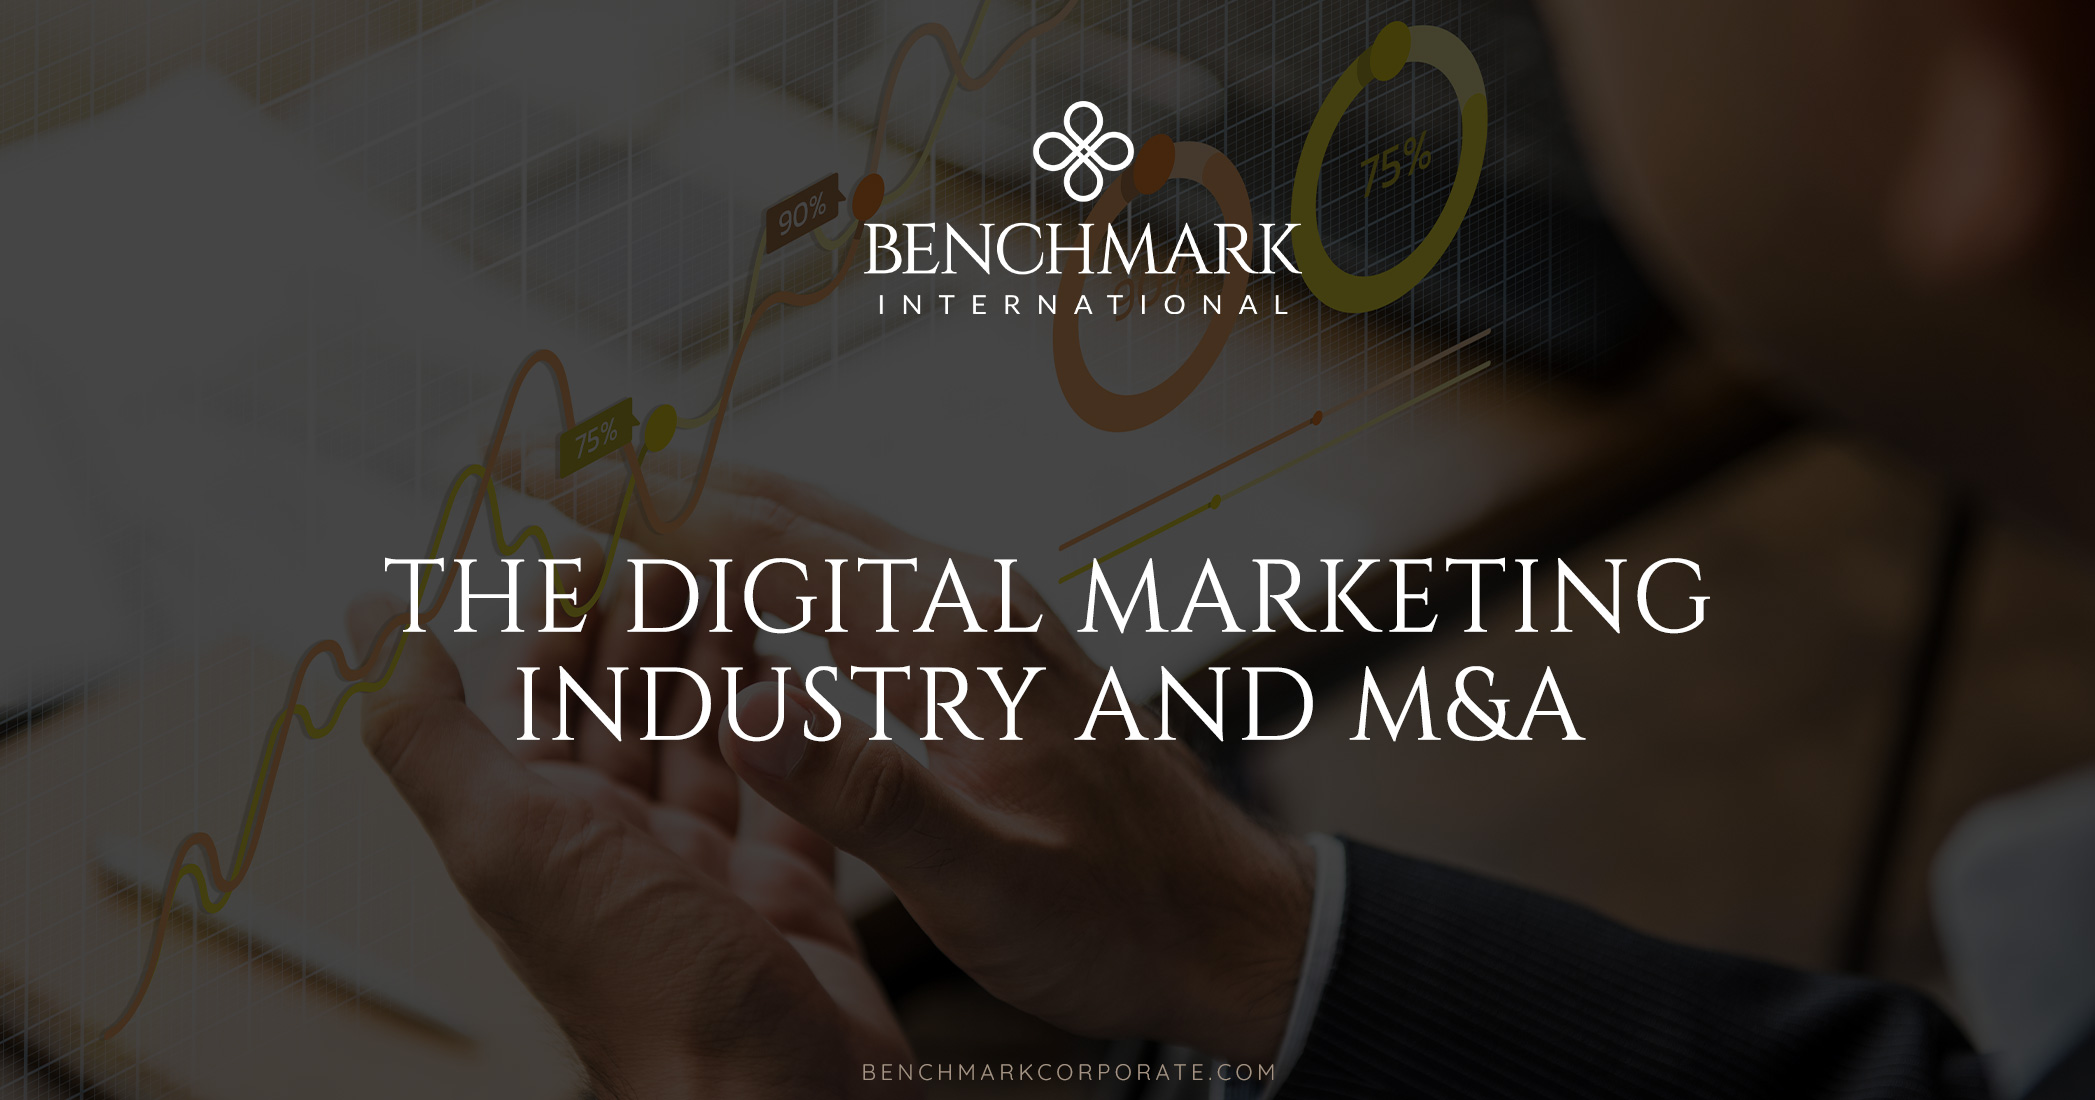 The Digital Marketing Industry and M&A